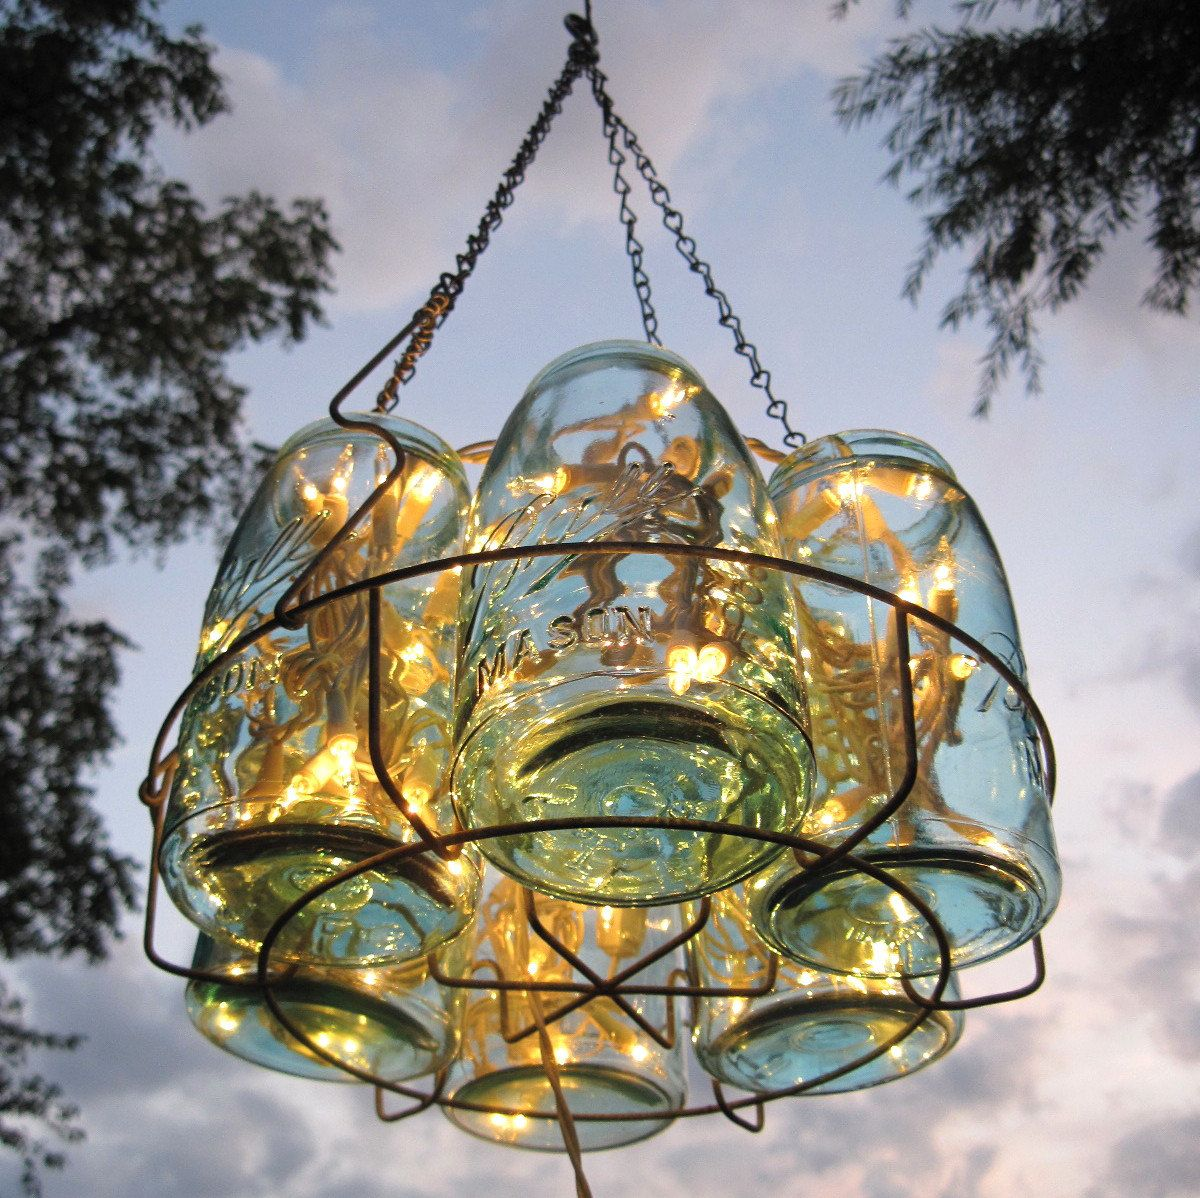 INTERIOR COLORED GLASS CHANDELIERS | Brightening Up Your Spaces with the Latest in Lighting Trends